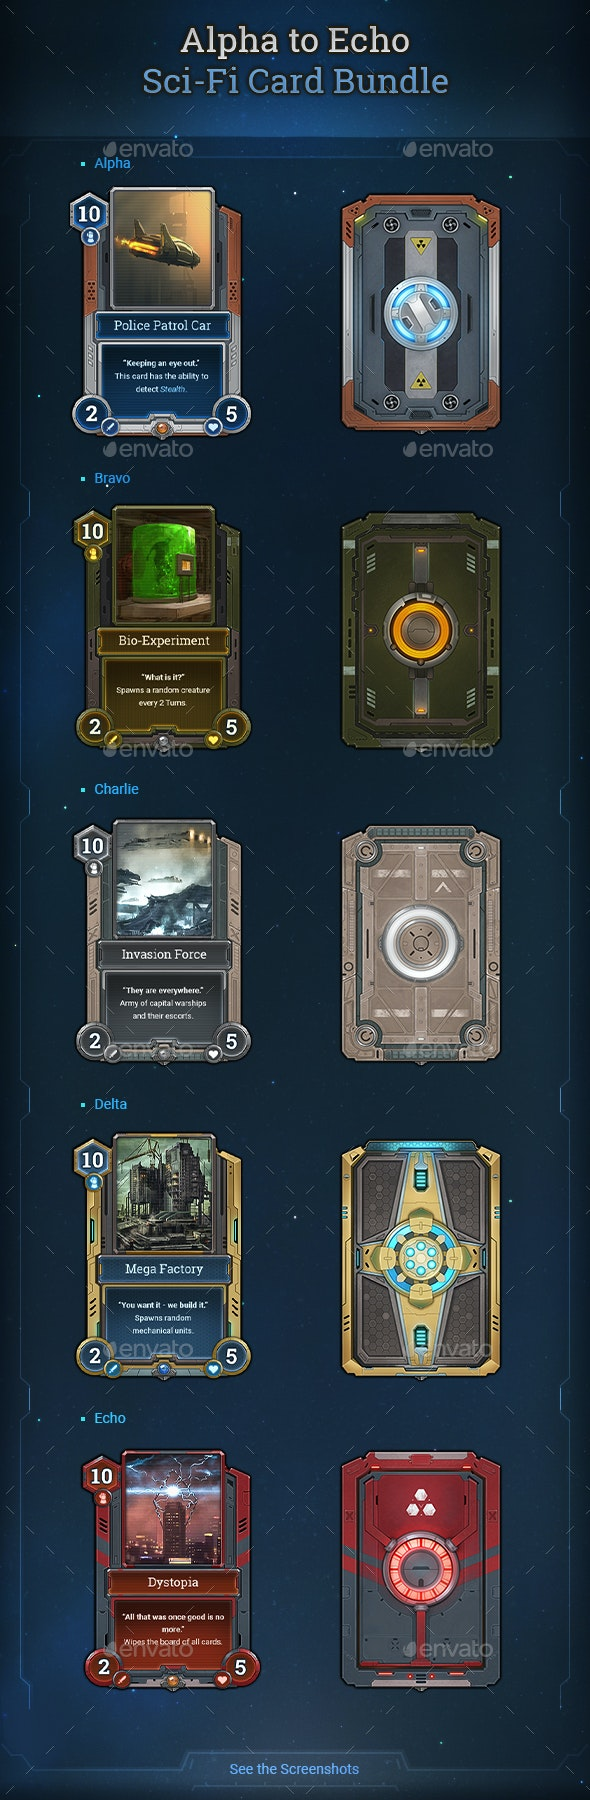 Alpha to Echo Sci-Fi Card Bundle - Miscellaneous Game Assets